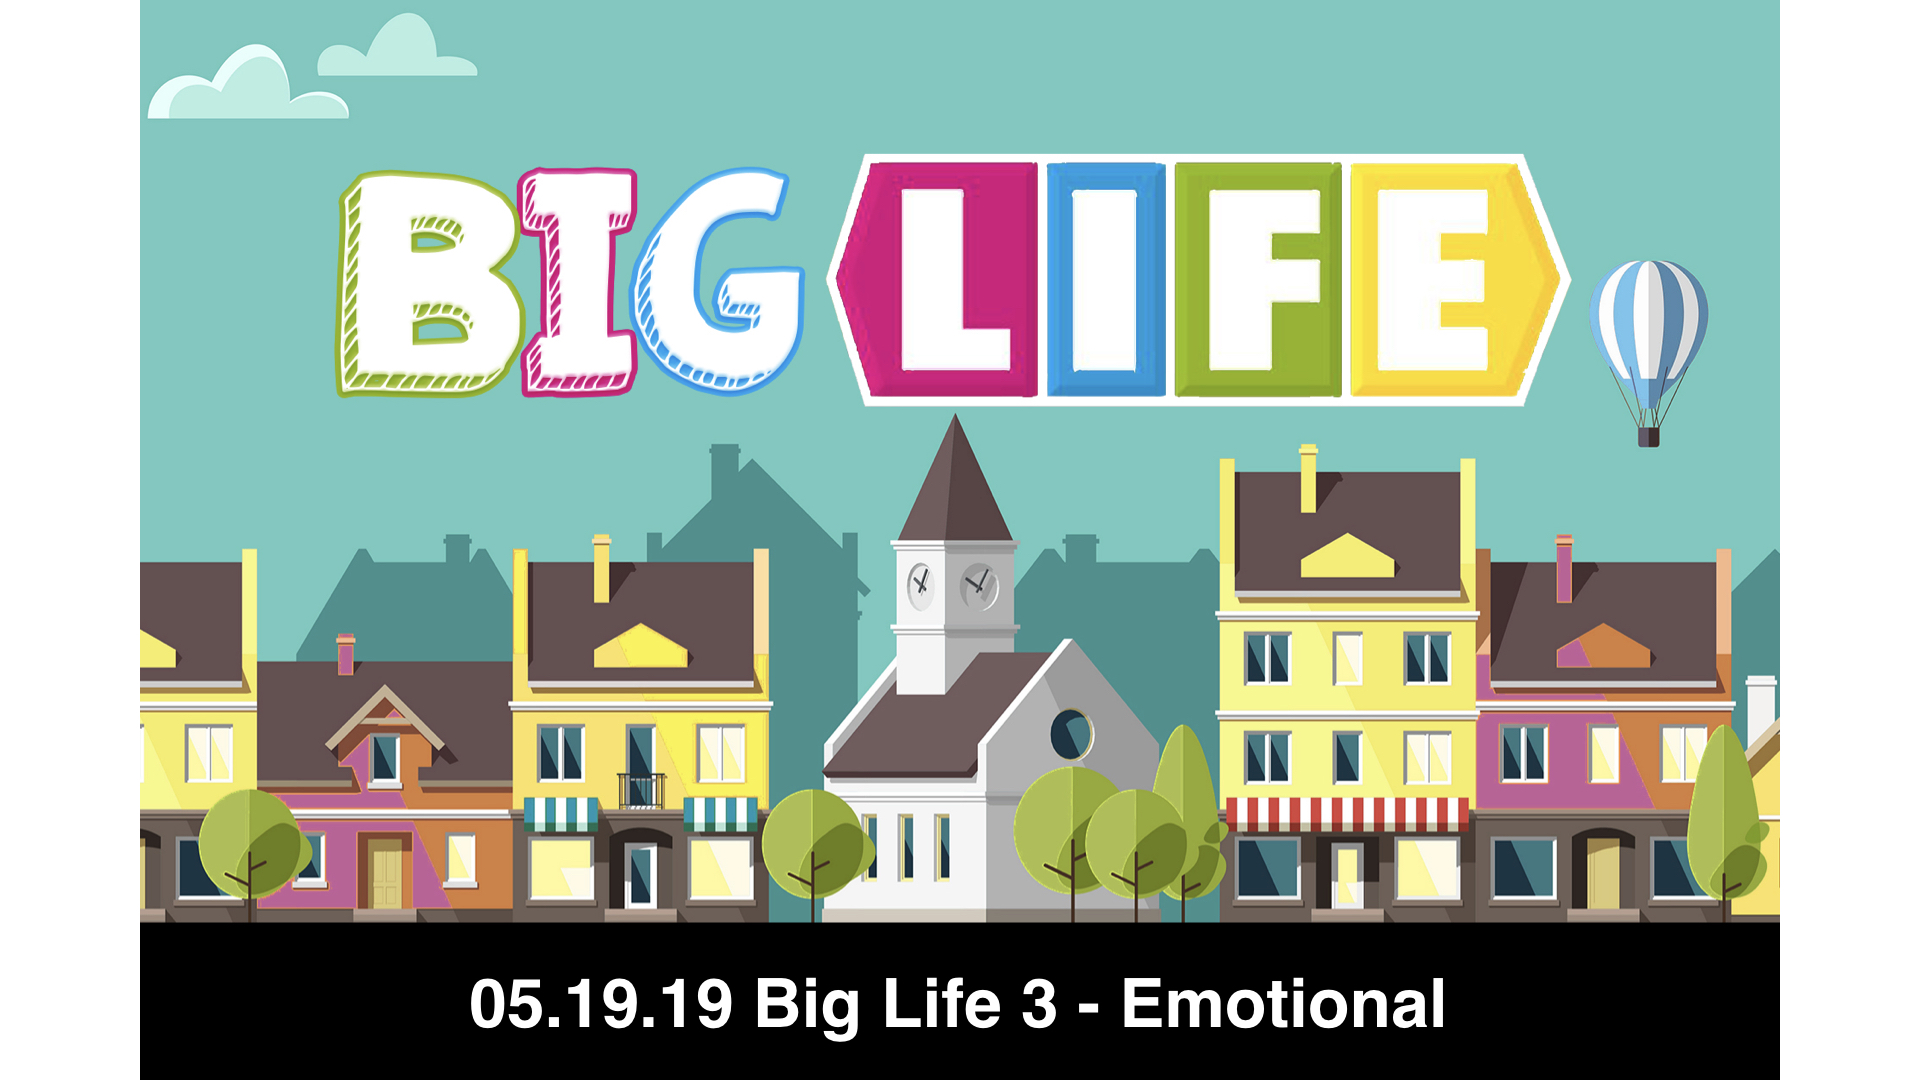 05.19.19 Big Life 3 - Emotionally